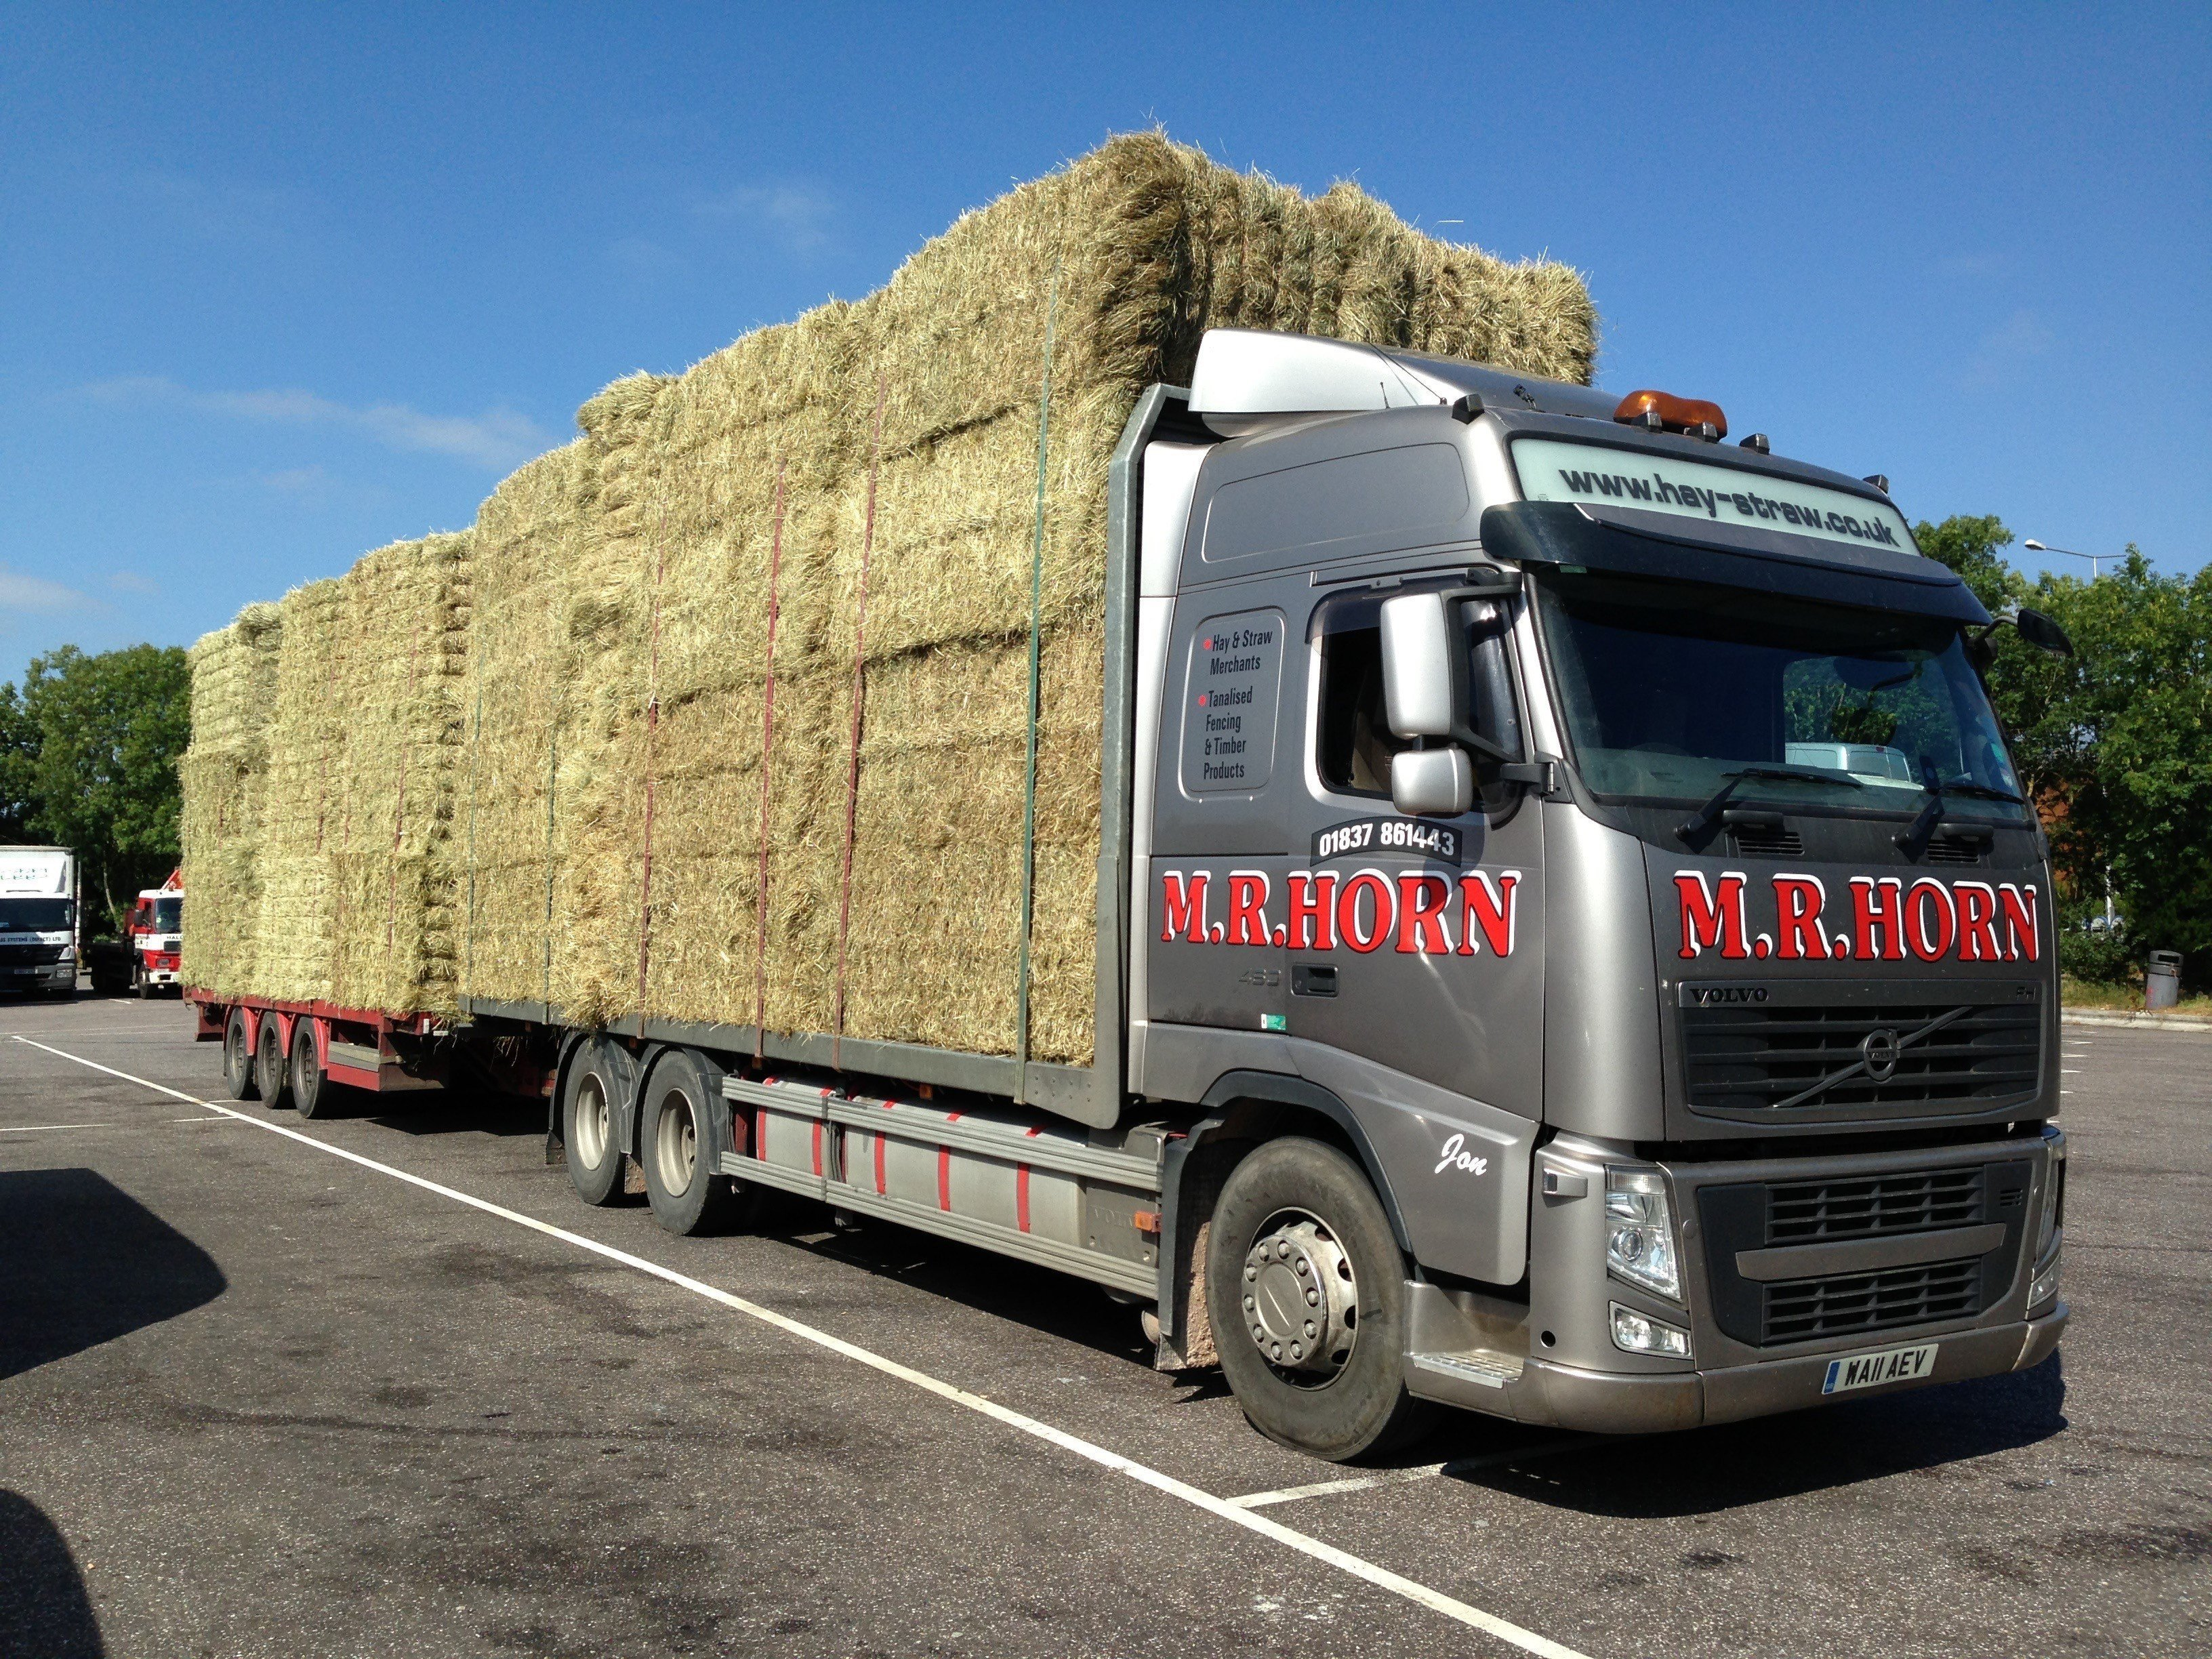 grey coloured lorry for transporting hay